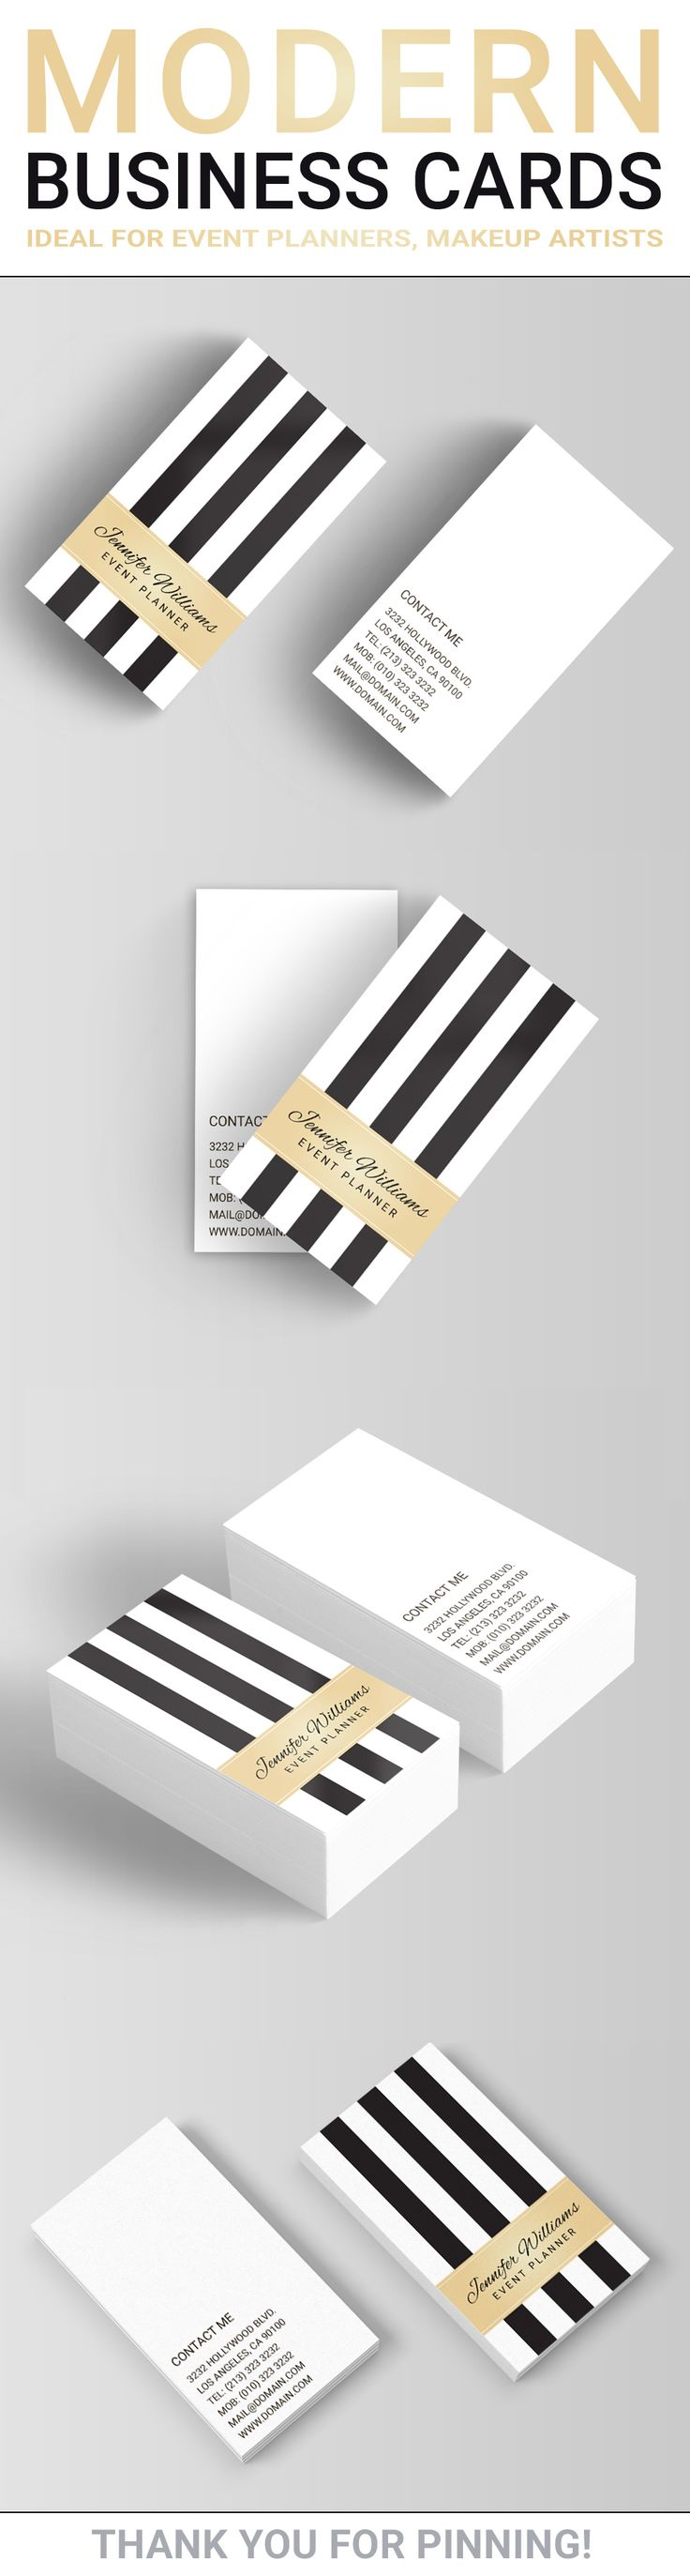 Trendy and chic vertical business cards template with black and trendy and chic vertical business cards template with black and white stripes this modern business card will be ideal for trend setting businesse magicingreecefo Images